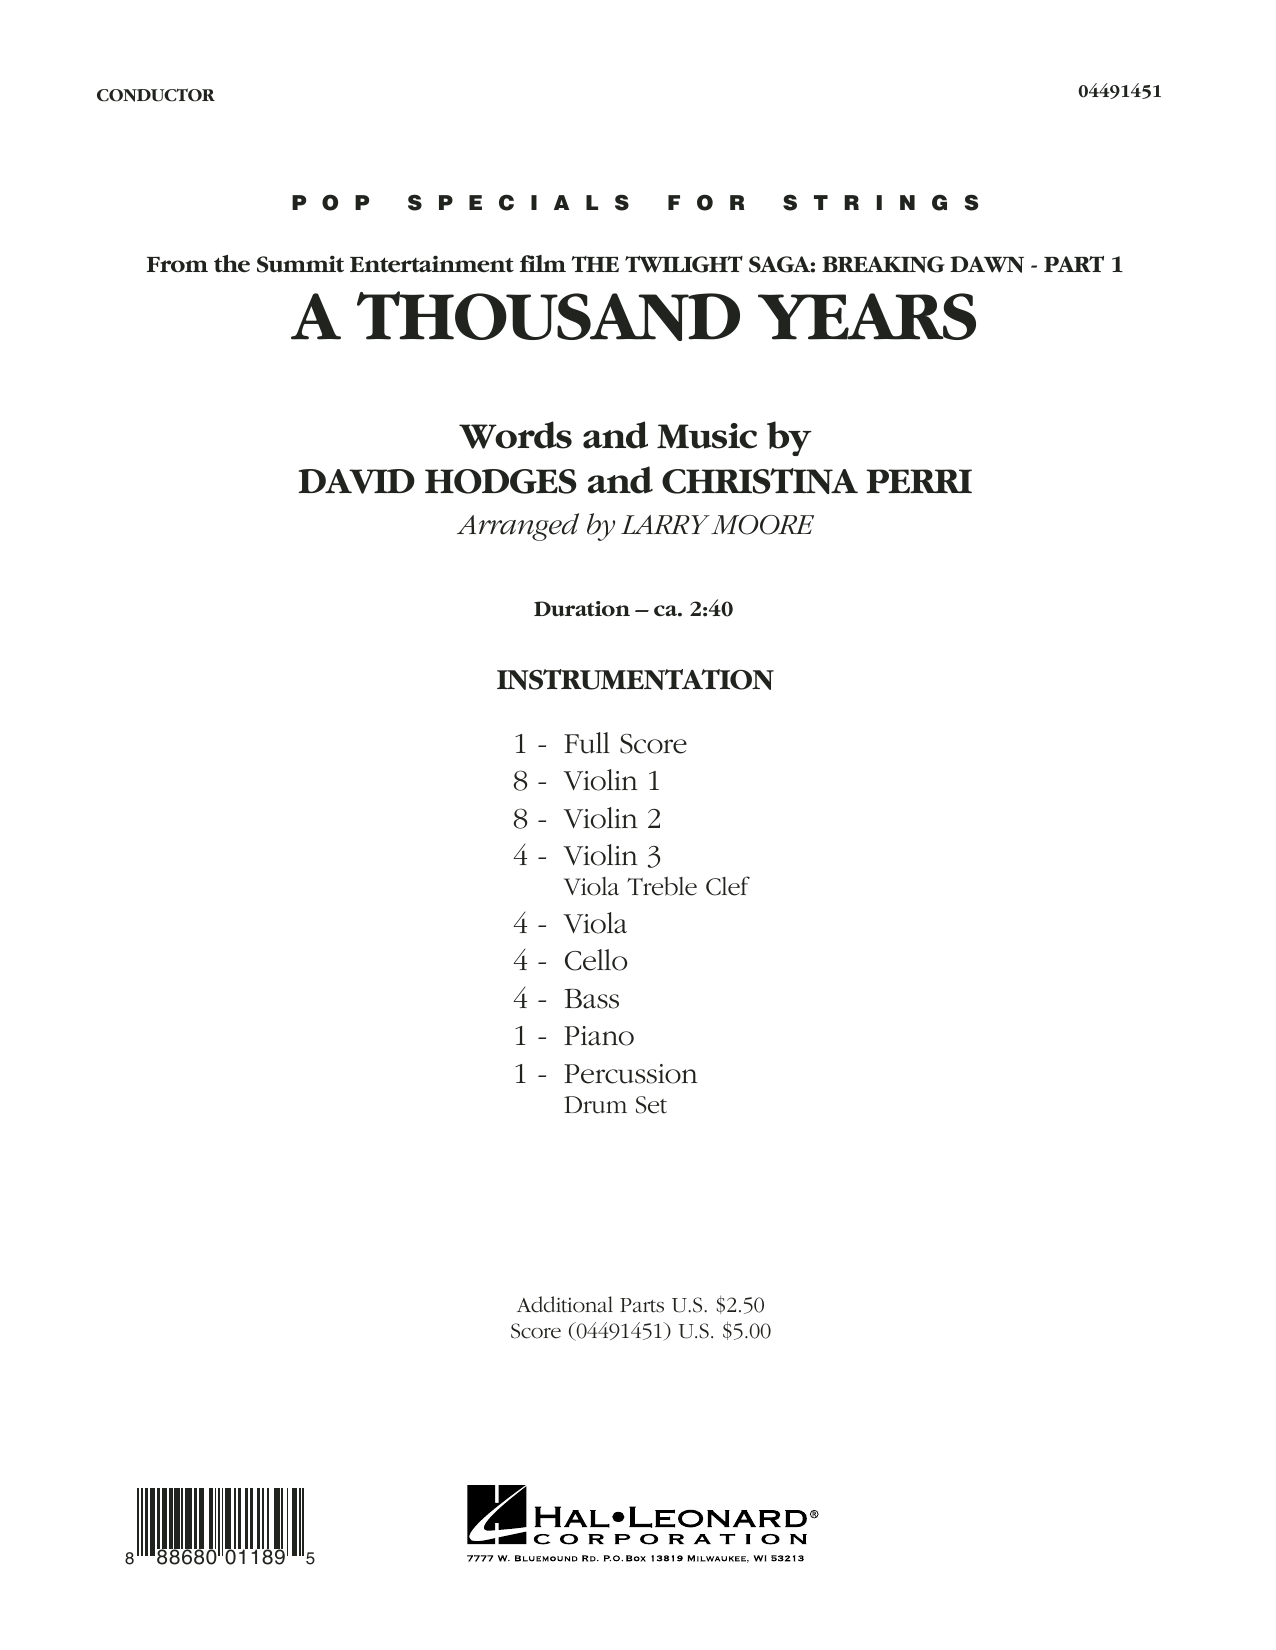 A Thousand Years (COMPLETE) sheet music for orchestra by Larry Moore